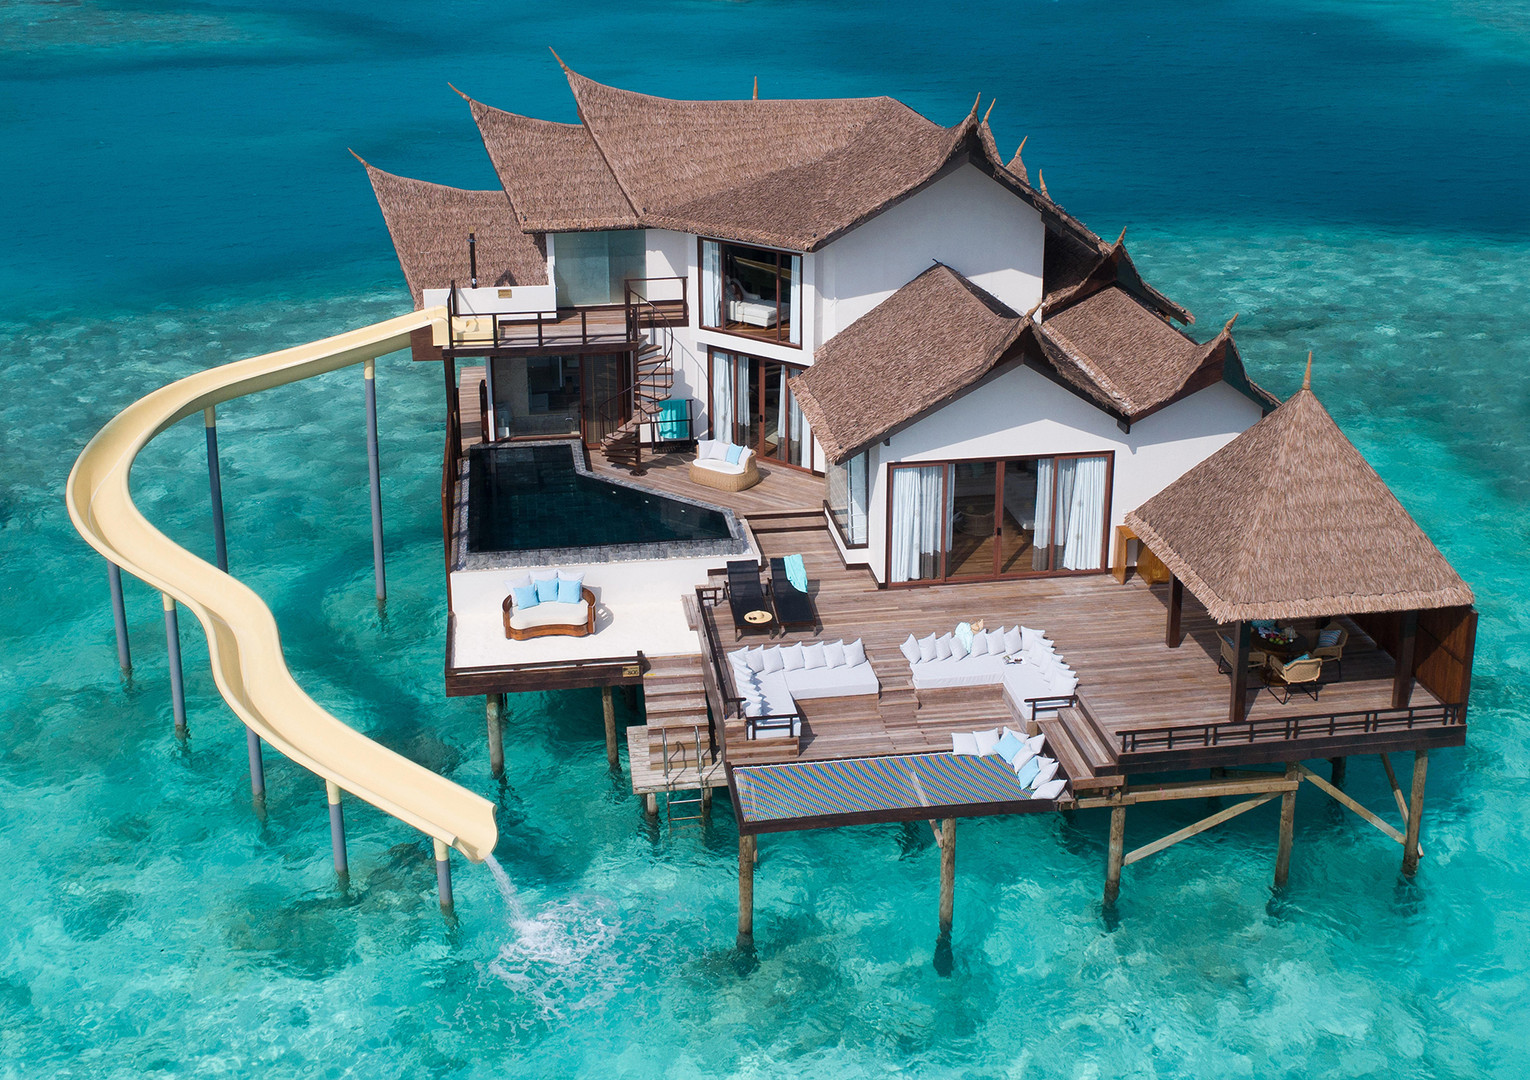 OZEN RESERVE BOLIFUSHI - Private Ocean RESERVE with Slide - Exterior View 2